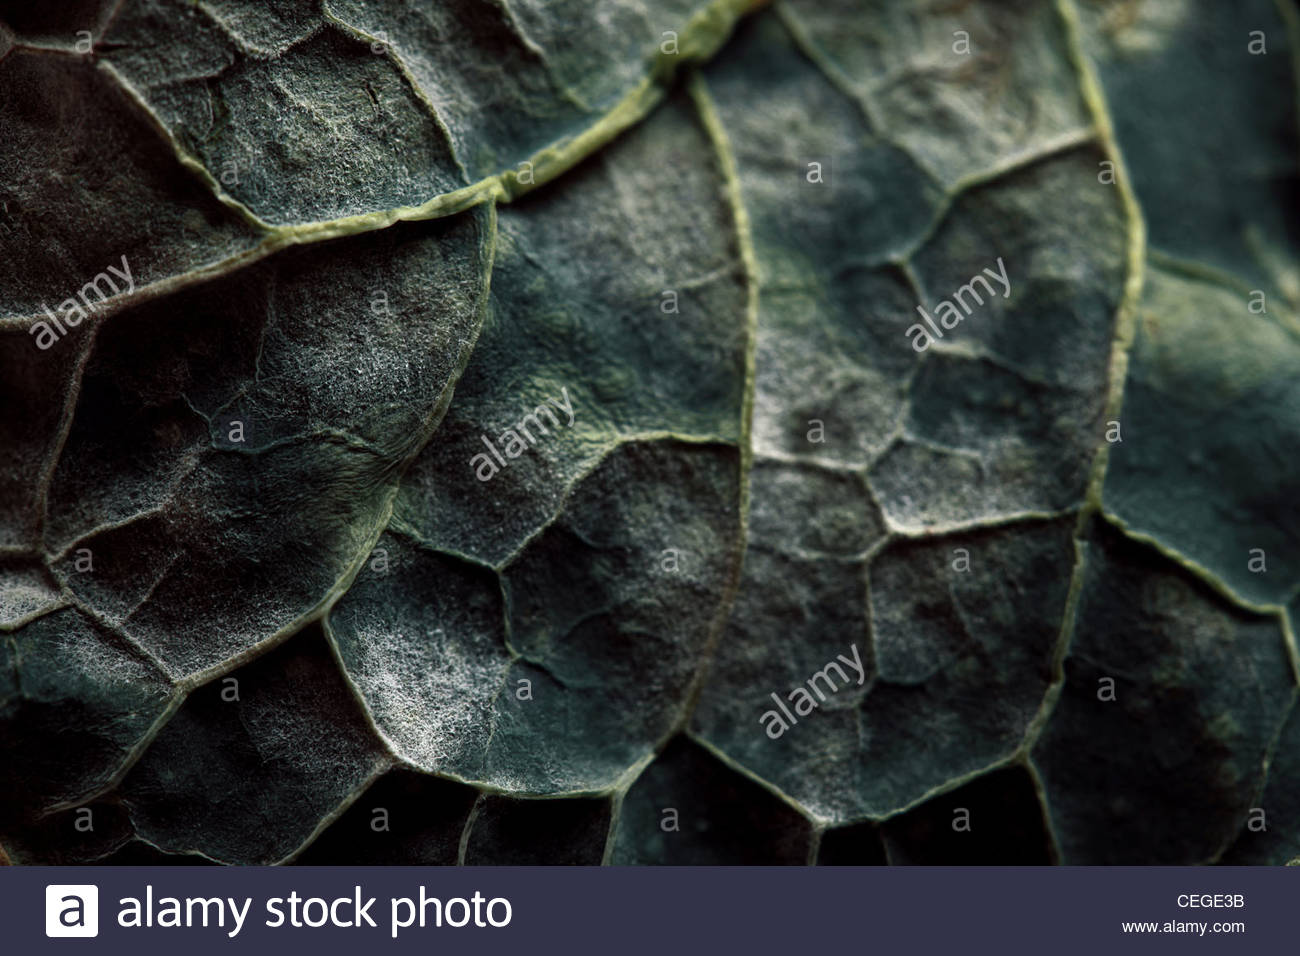 Leaf - Stock Image